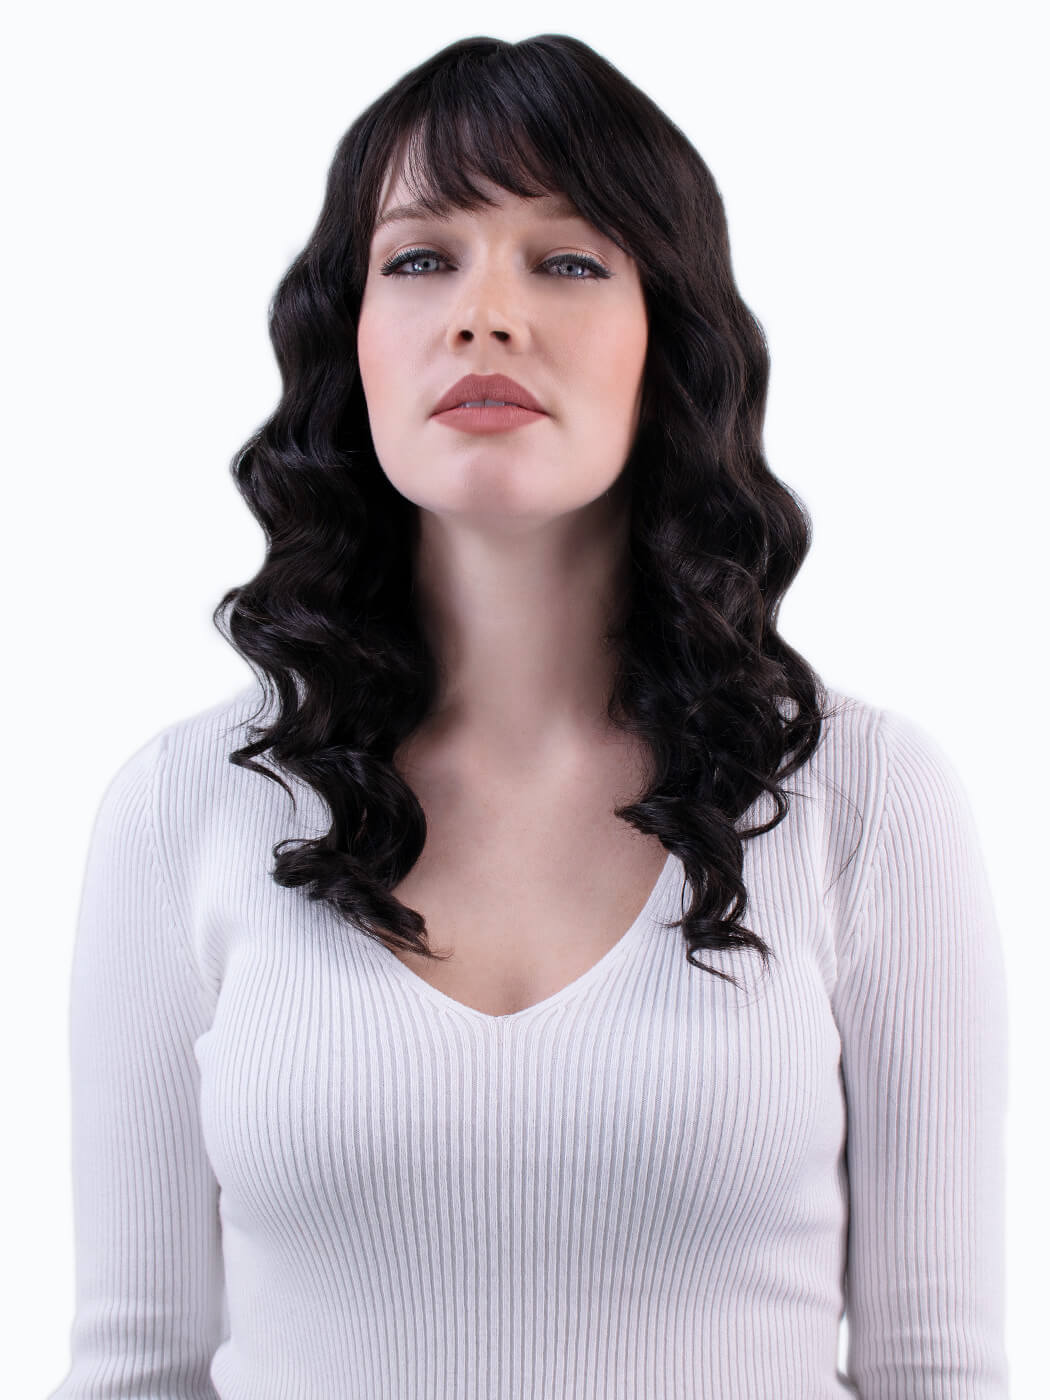 Reverie - Shoulder Length Human Hair Wig On Model Front View | Dark wig with bangs